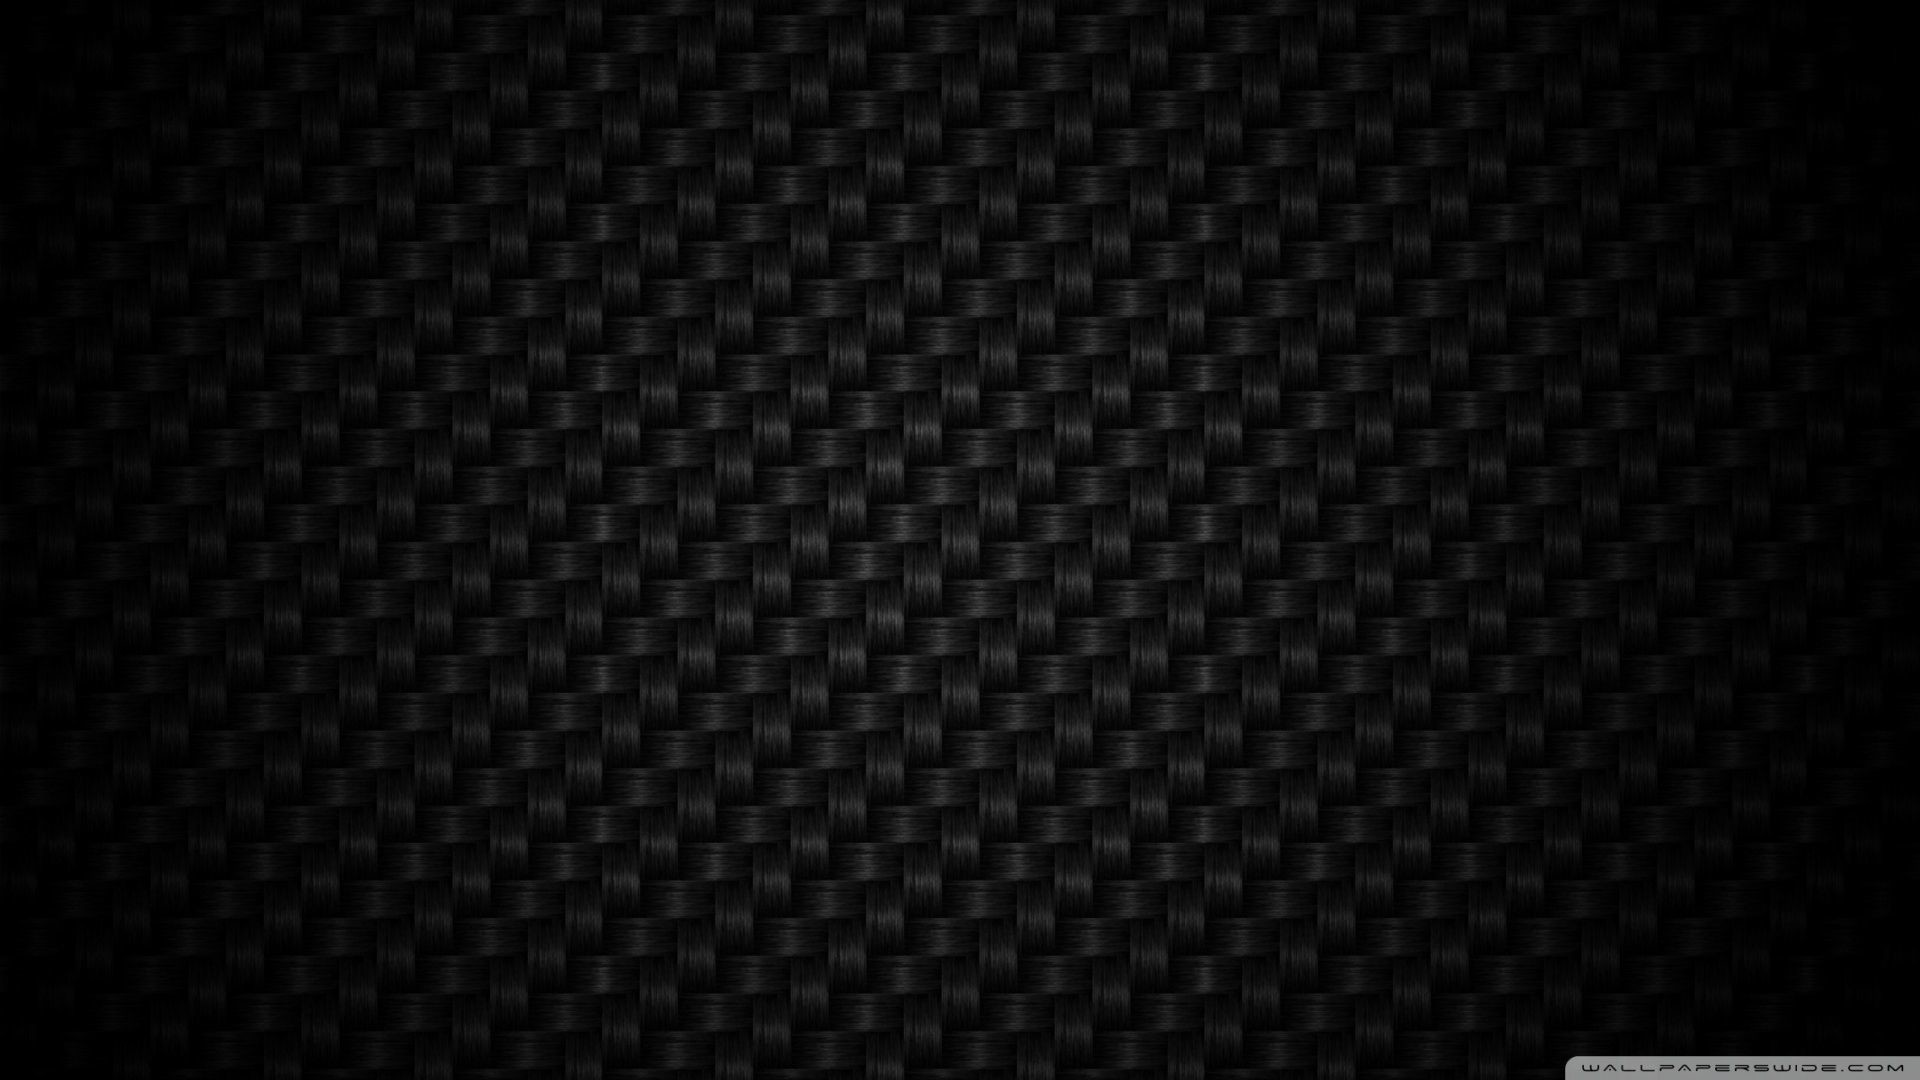 Solid Black Wallpapers 1920x1080 81 Background Pictures